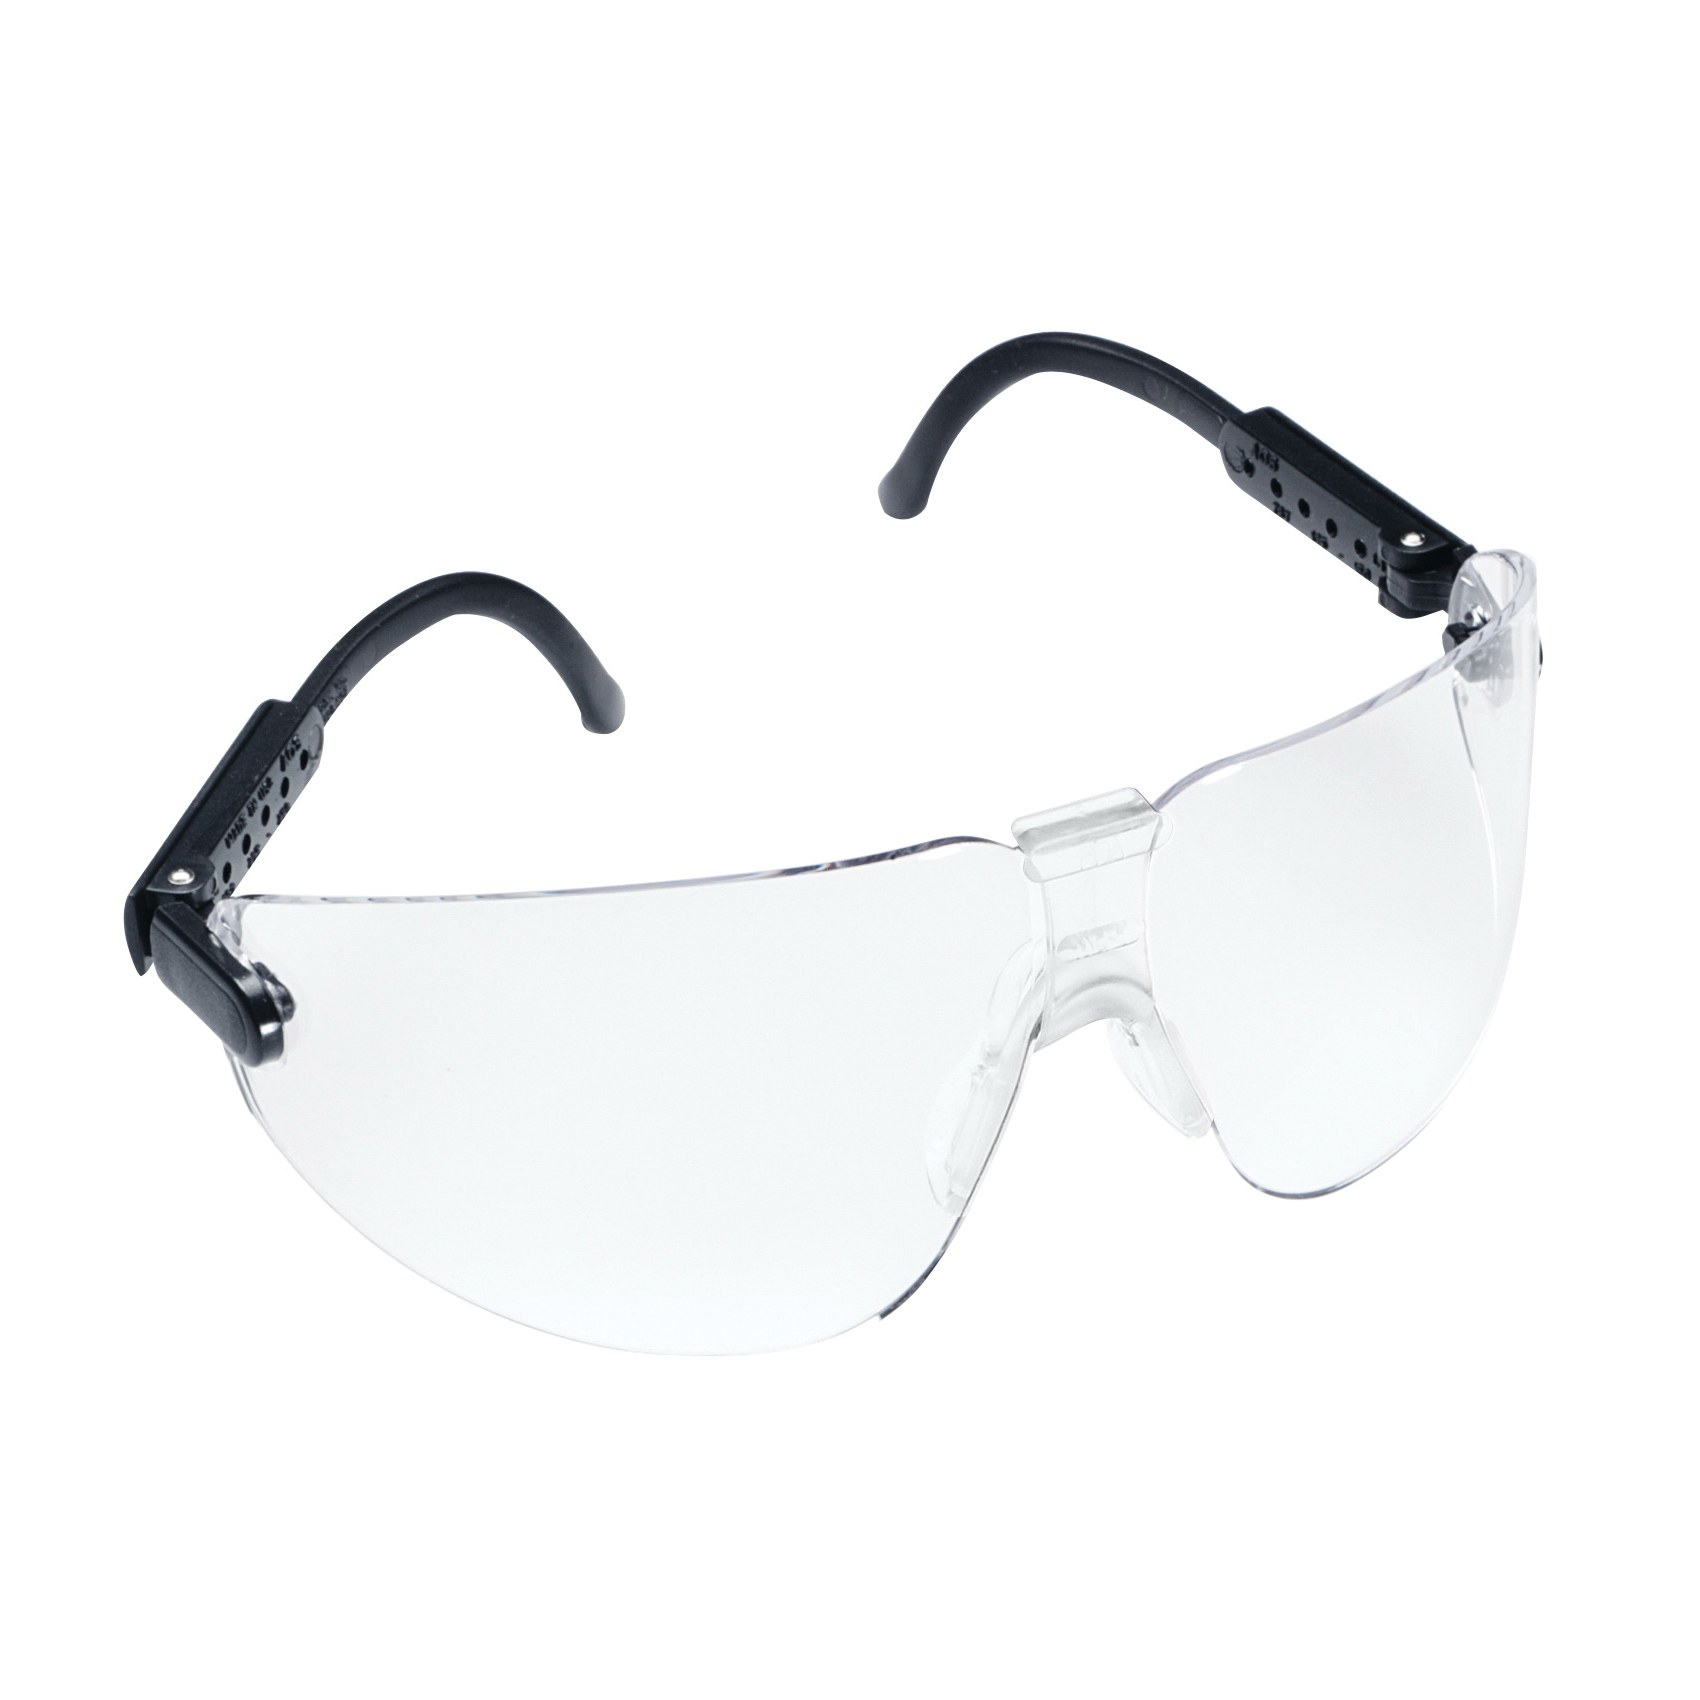 3M™ Lexa™ Fighter 078371-62282 Protective Glasses, DX™ Anti-Fog, Clear Lens, Frameless Frame, Black, Plastic Frame, Polycarbonate Lens, ANSI Z87.1, CSA Z94.3